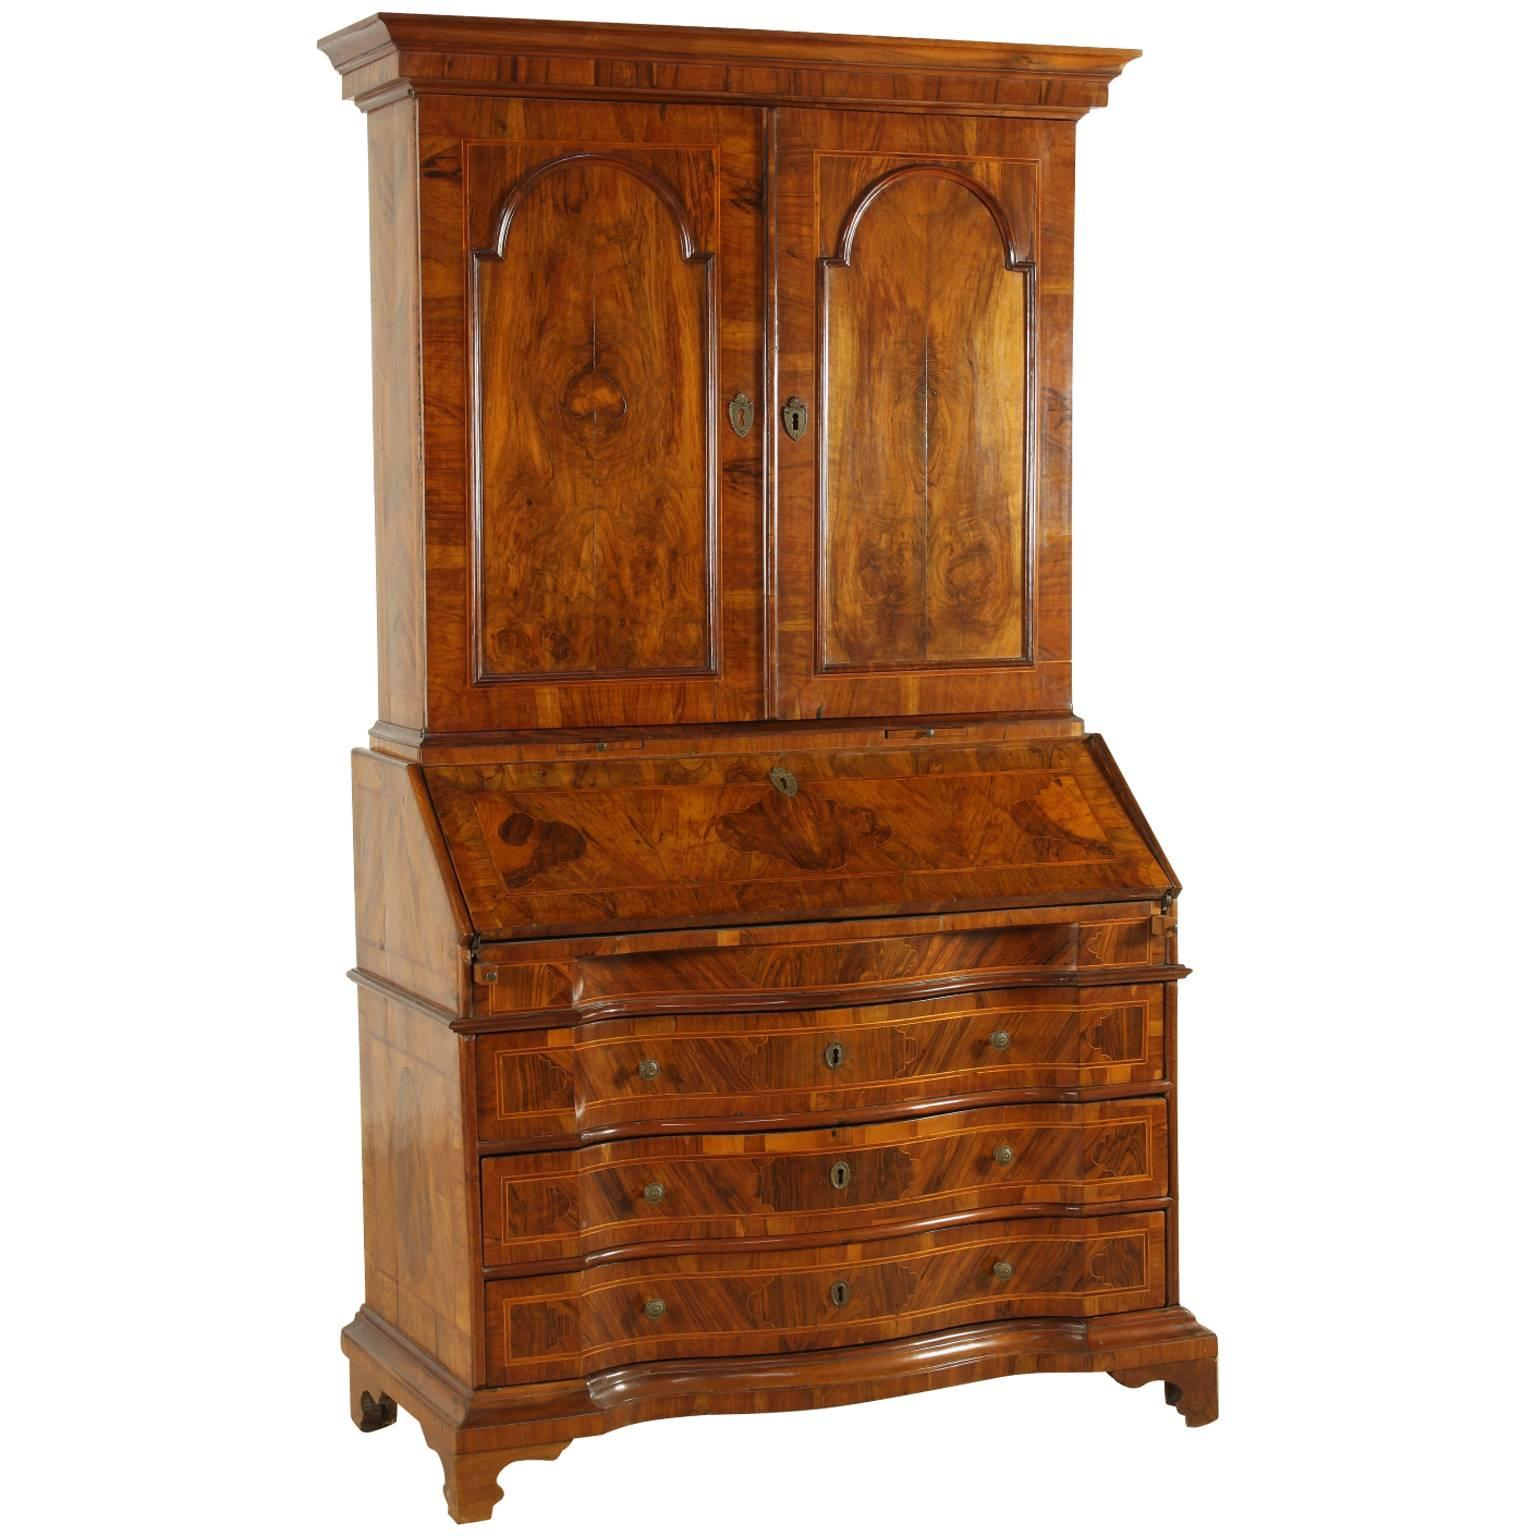 Late 18th Century Neoclassical Walnut and Olivewood Drop-Leaf Chest of Drawers